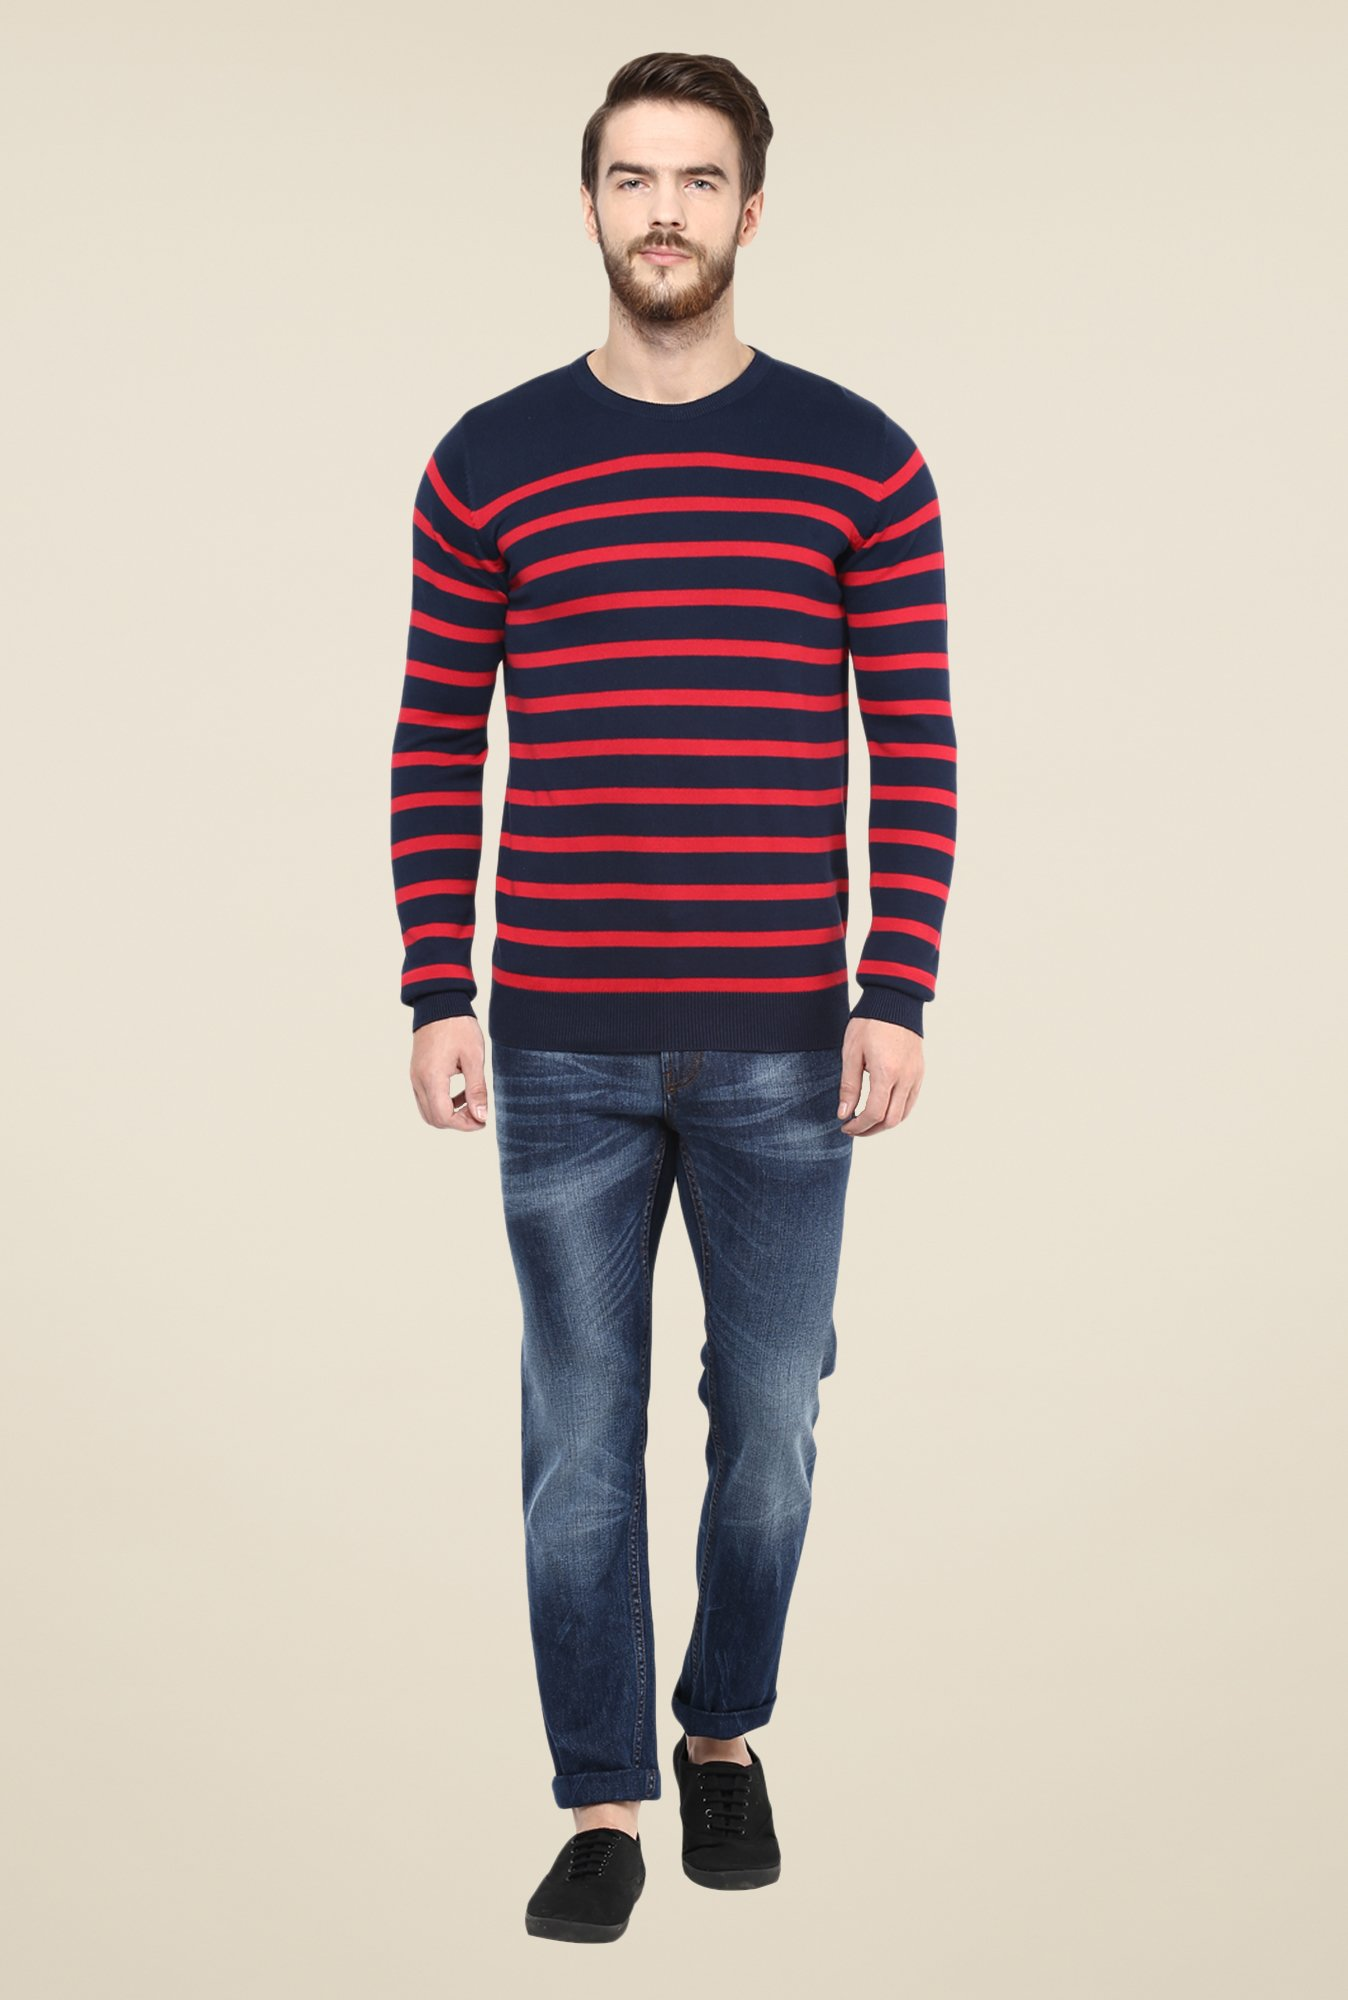 celio* Navy & Red Striped Sweater